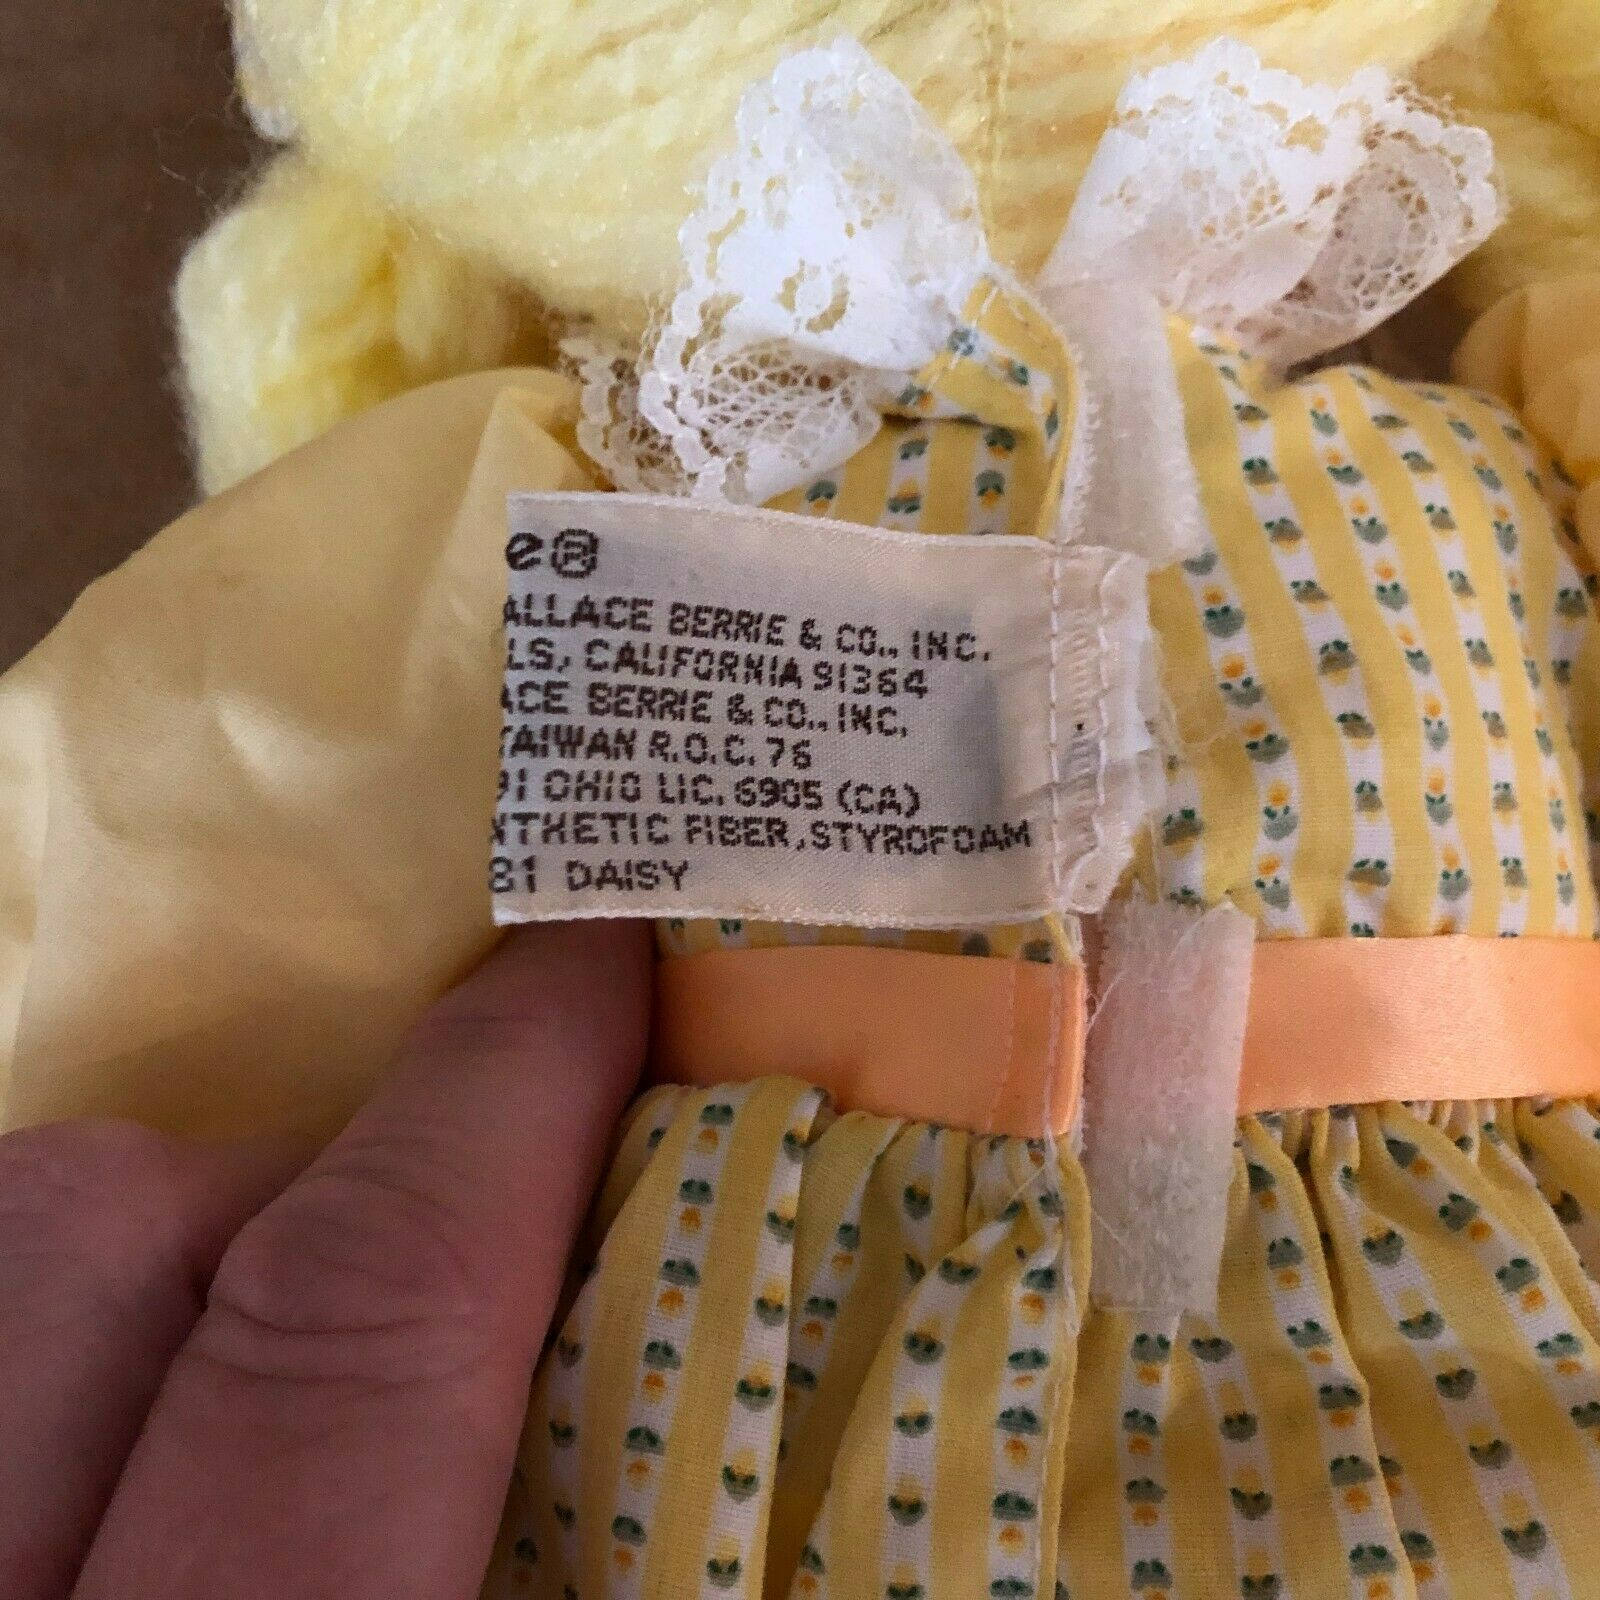 "Applause Daisy soft body doll vintage yellow dress hair Piorette 16""  image 8"